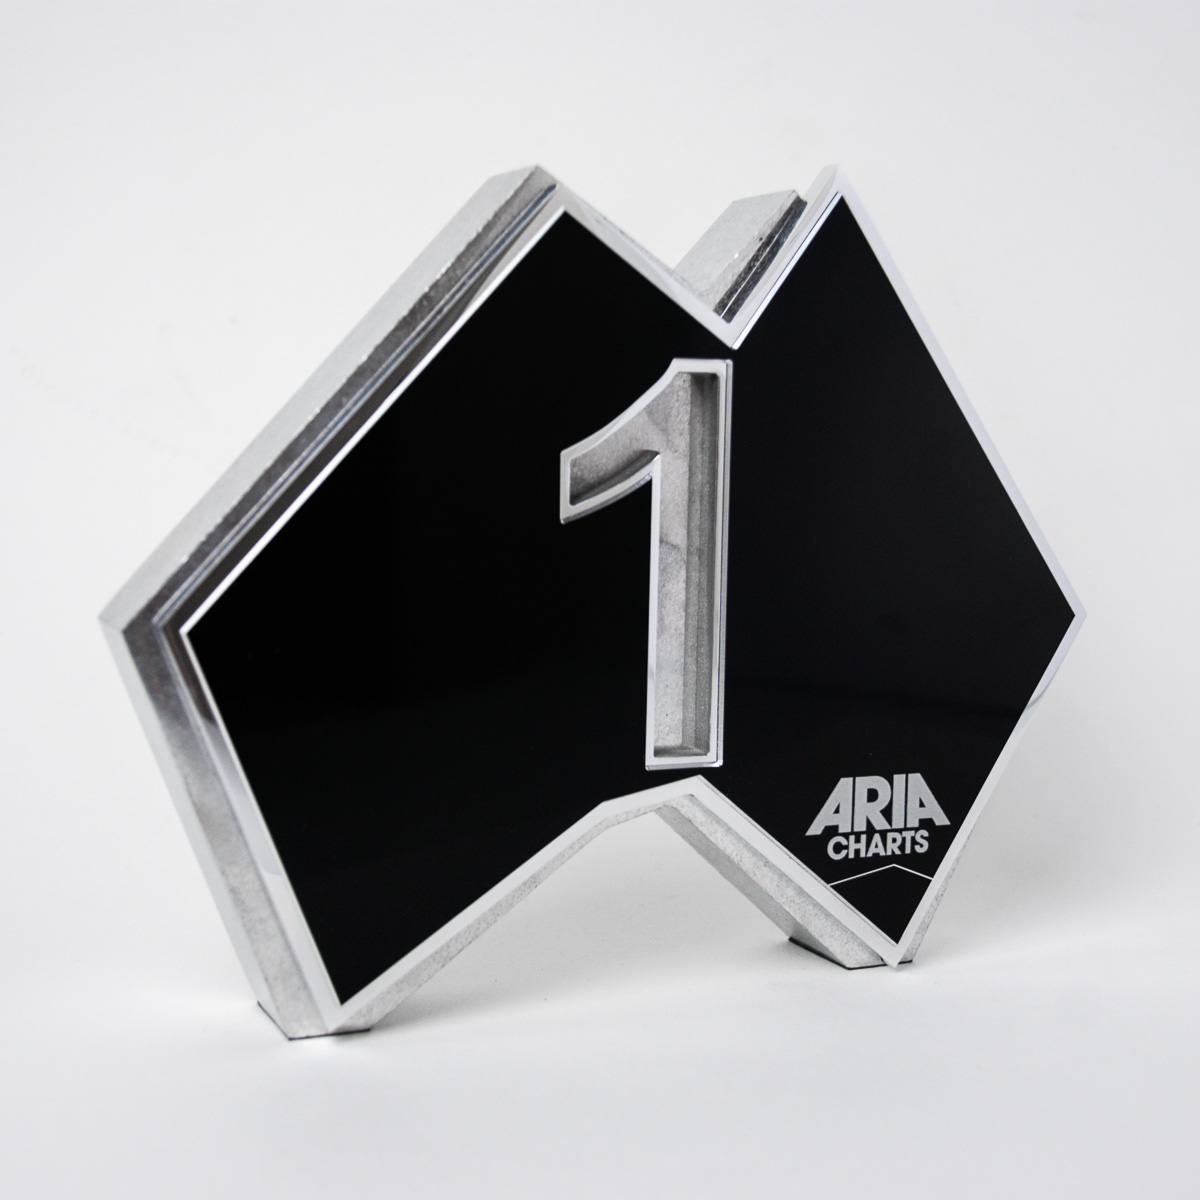 ARIA Charts Number 1 Trophy Black - Australian Recording Industry Awards